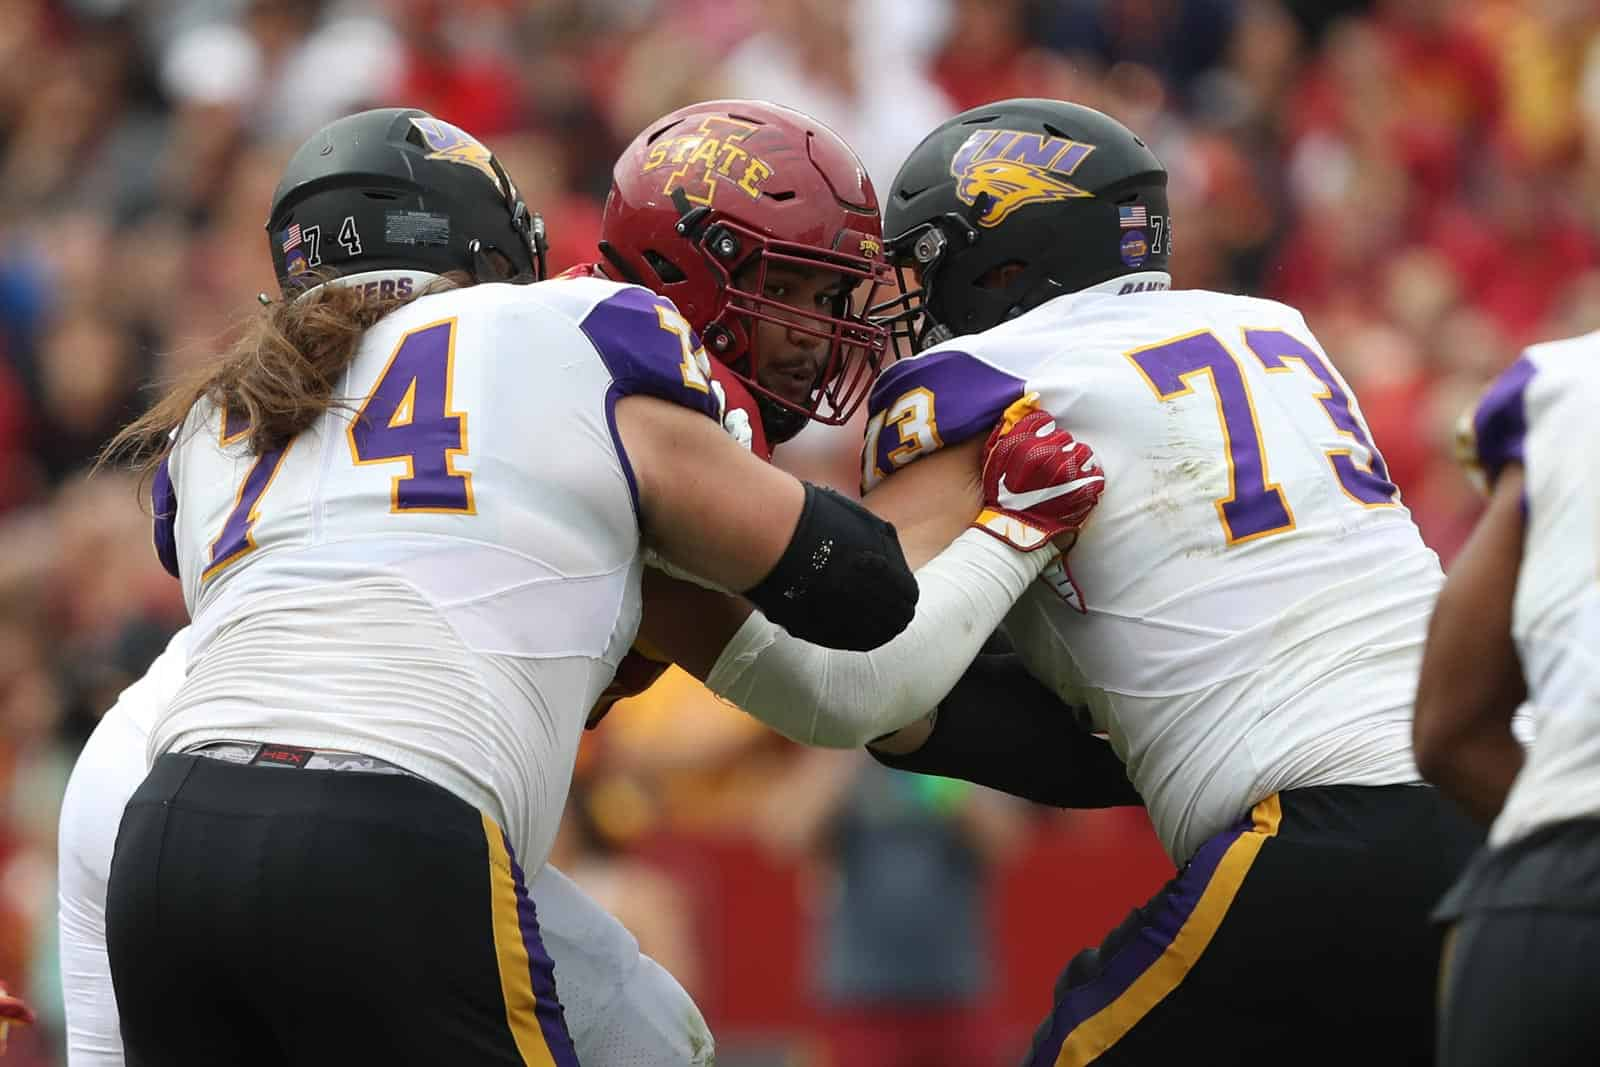 Iowa State-Northern Iowa